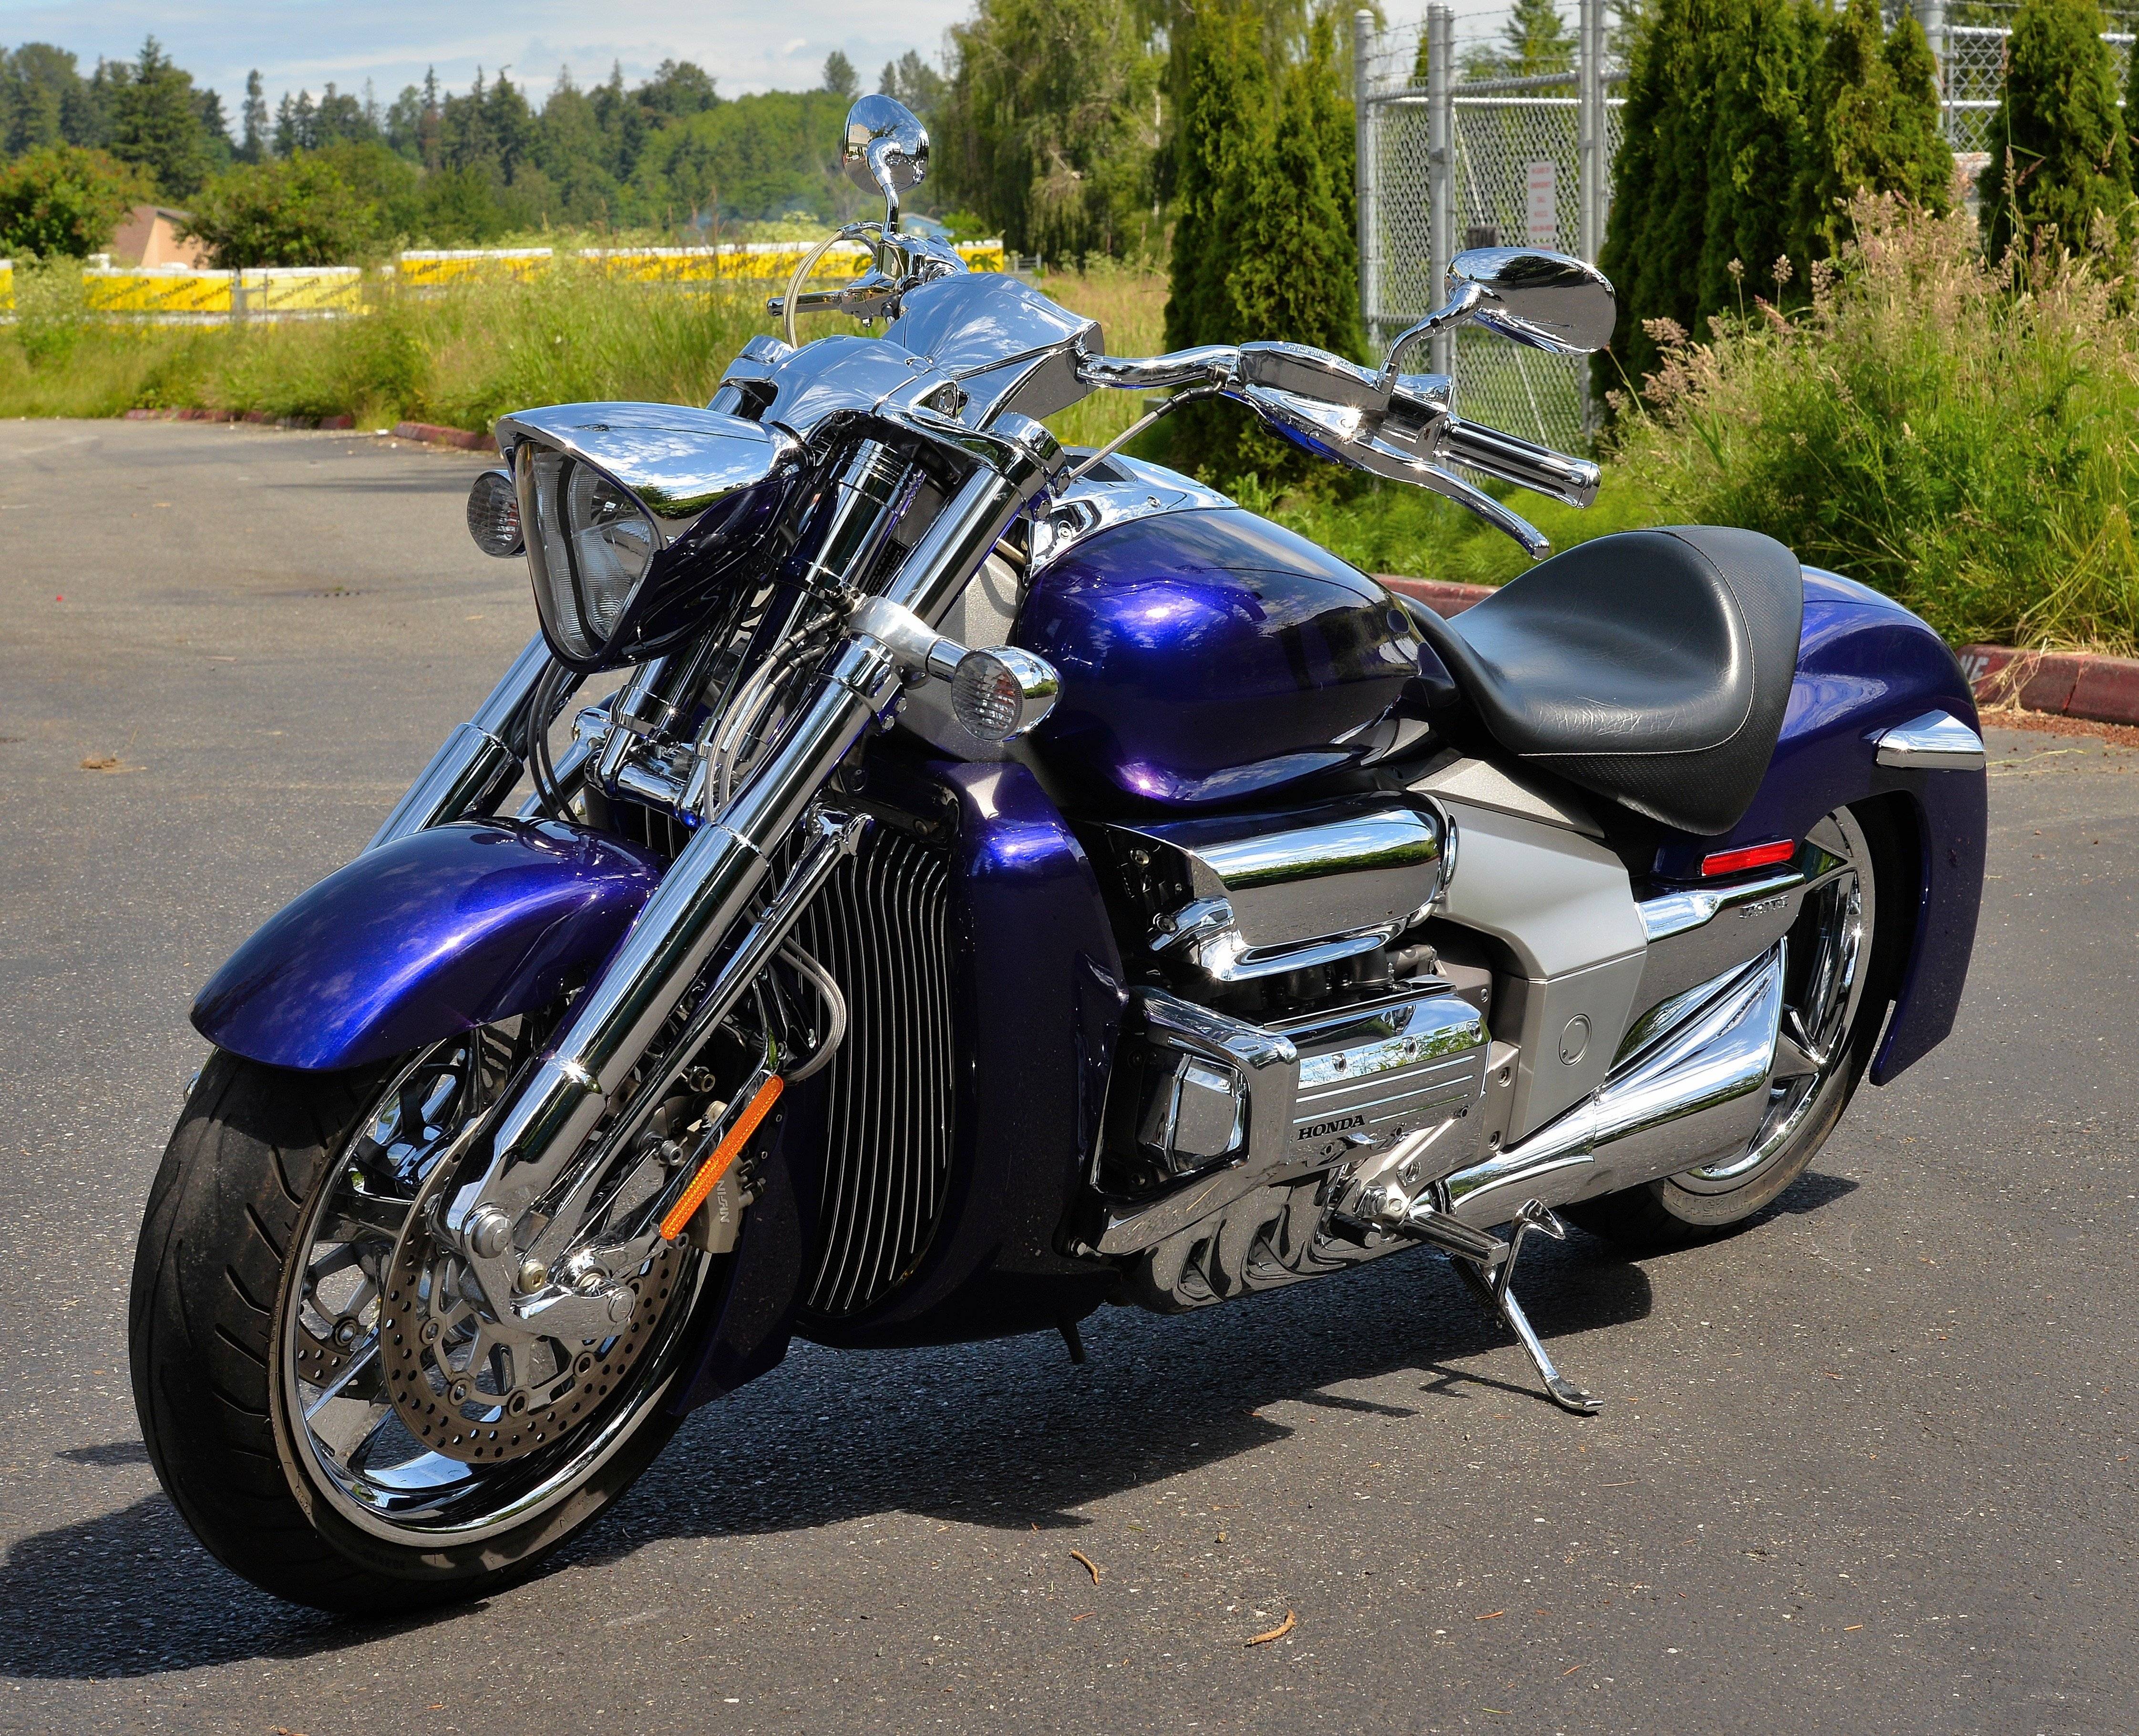 2004 Honda Valkyrie Rune Motorcycles for Sale ...